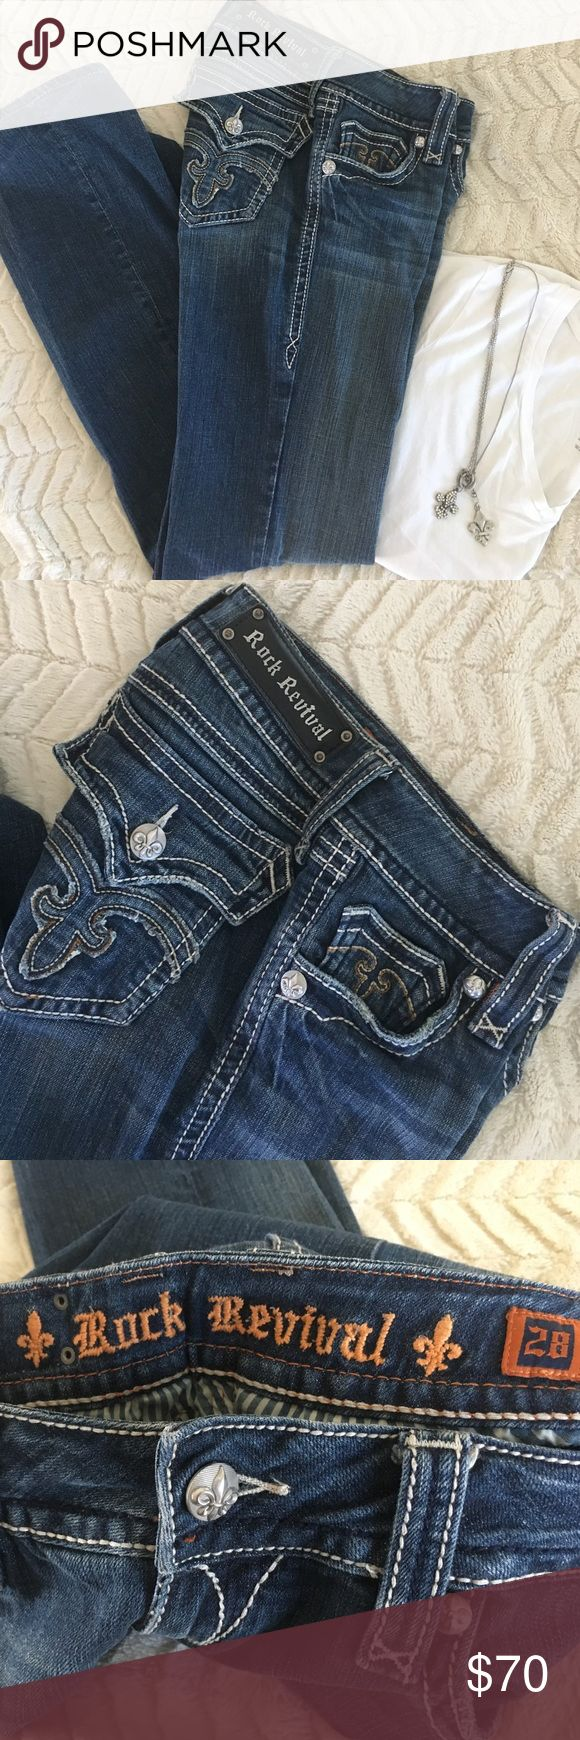 Rock Revival women's jeans Rock Revival women's jeans. Size 28 / 31 1/2 inseam. EUC. Front and back pockets and zipper fly. These are called Debbie boot. Slightly bootcut but not huge. Will ship next day. Rock Revival Jeans Boot Cut